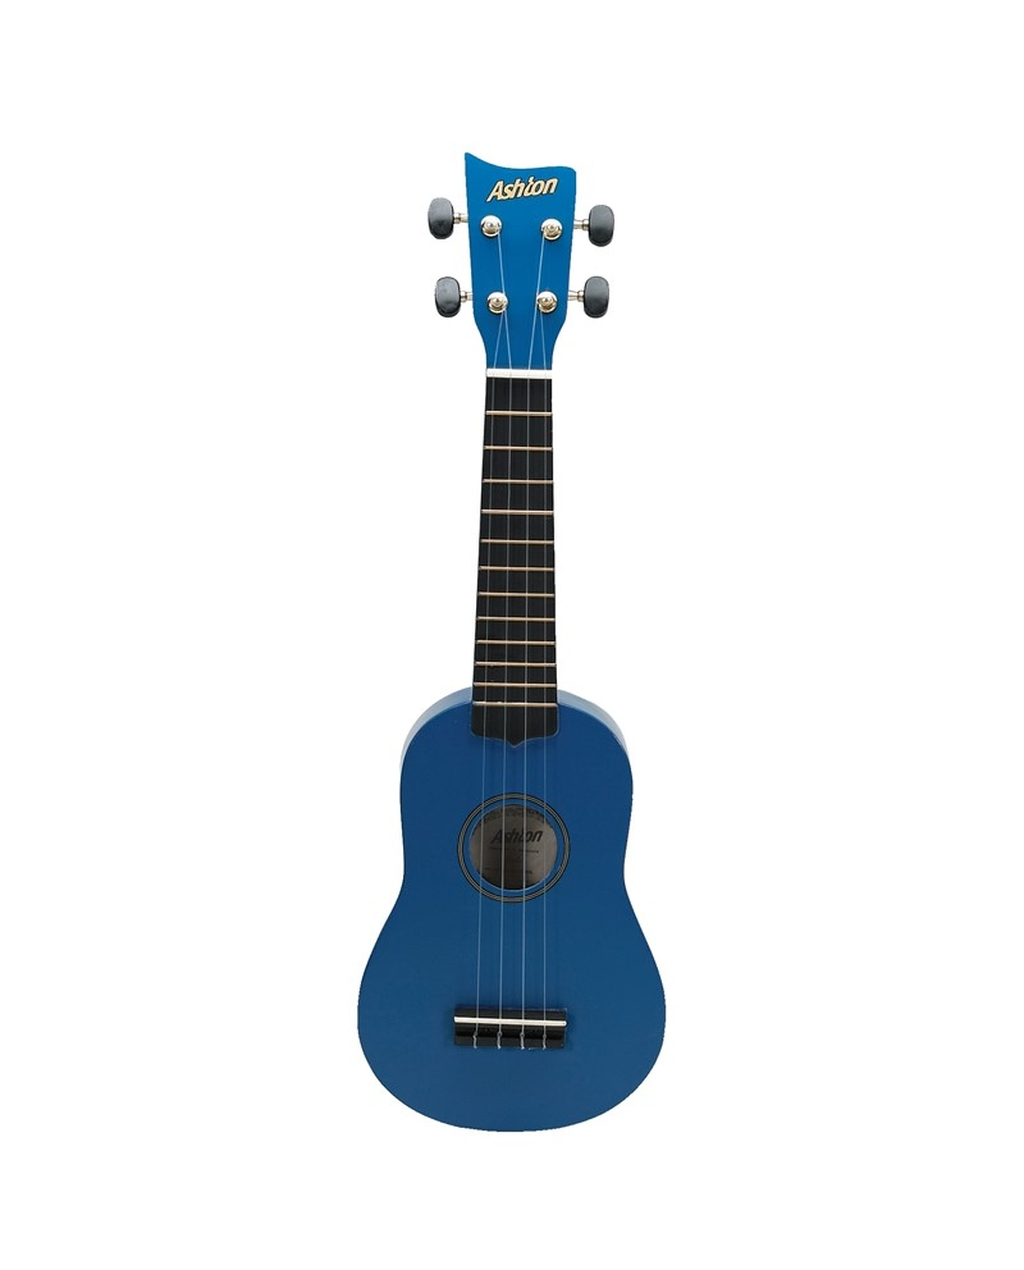 Ashton UKE100 Ukulele - Pack of 6 Assorted Colours